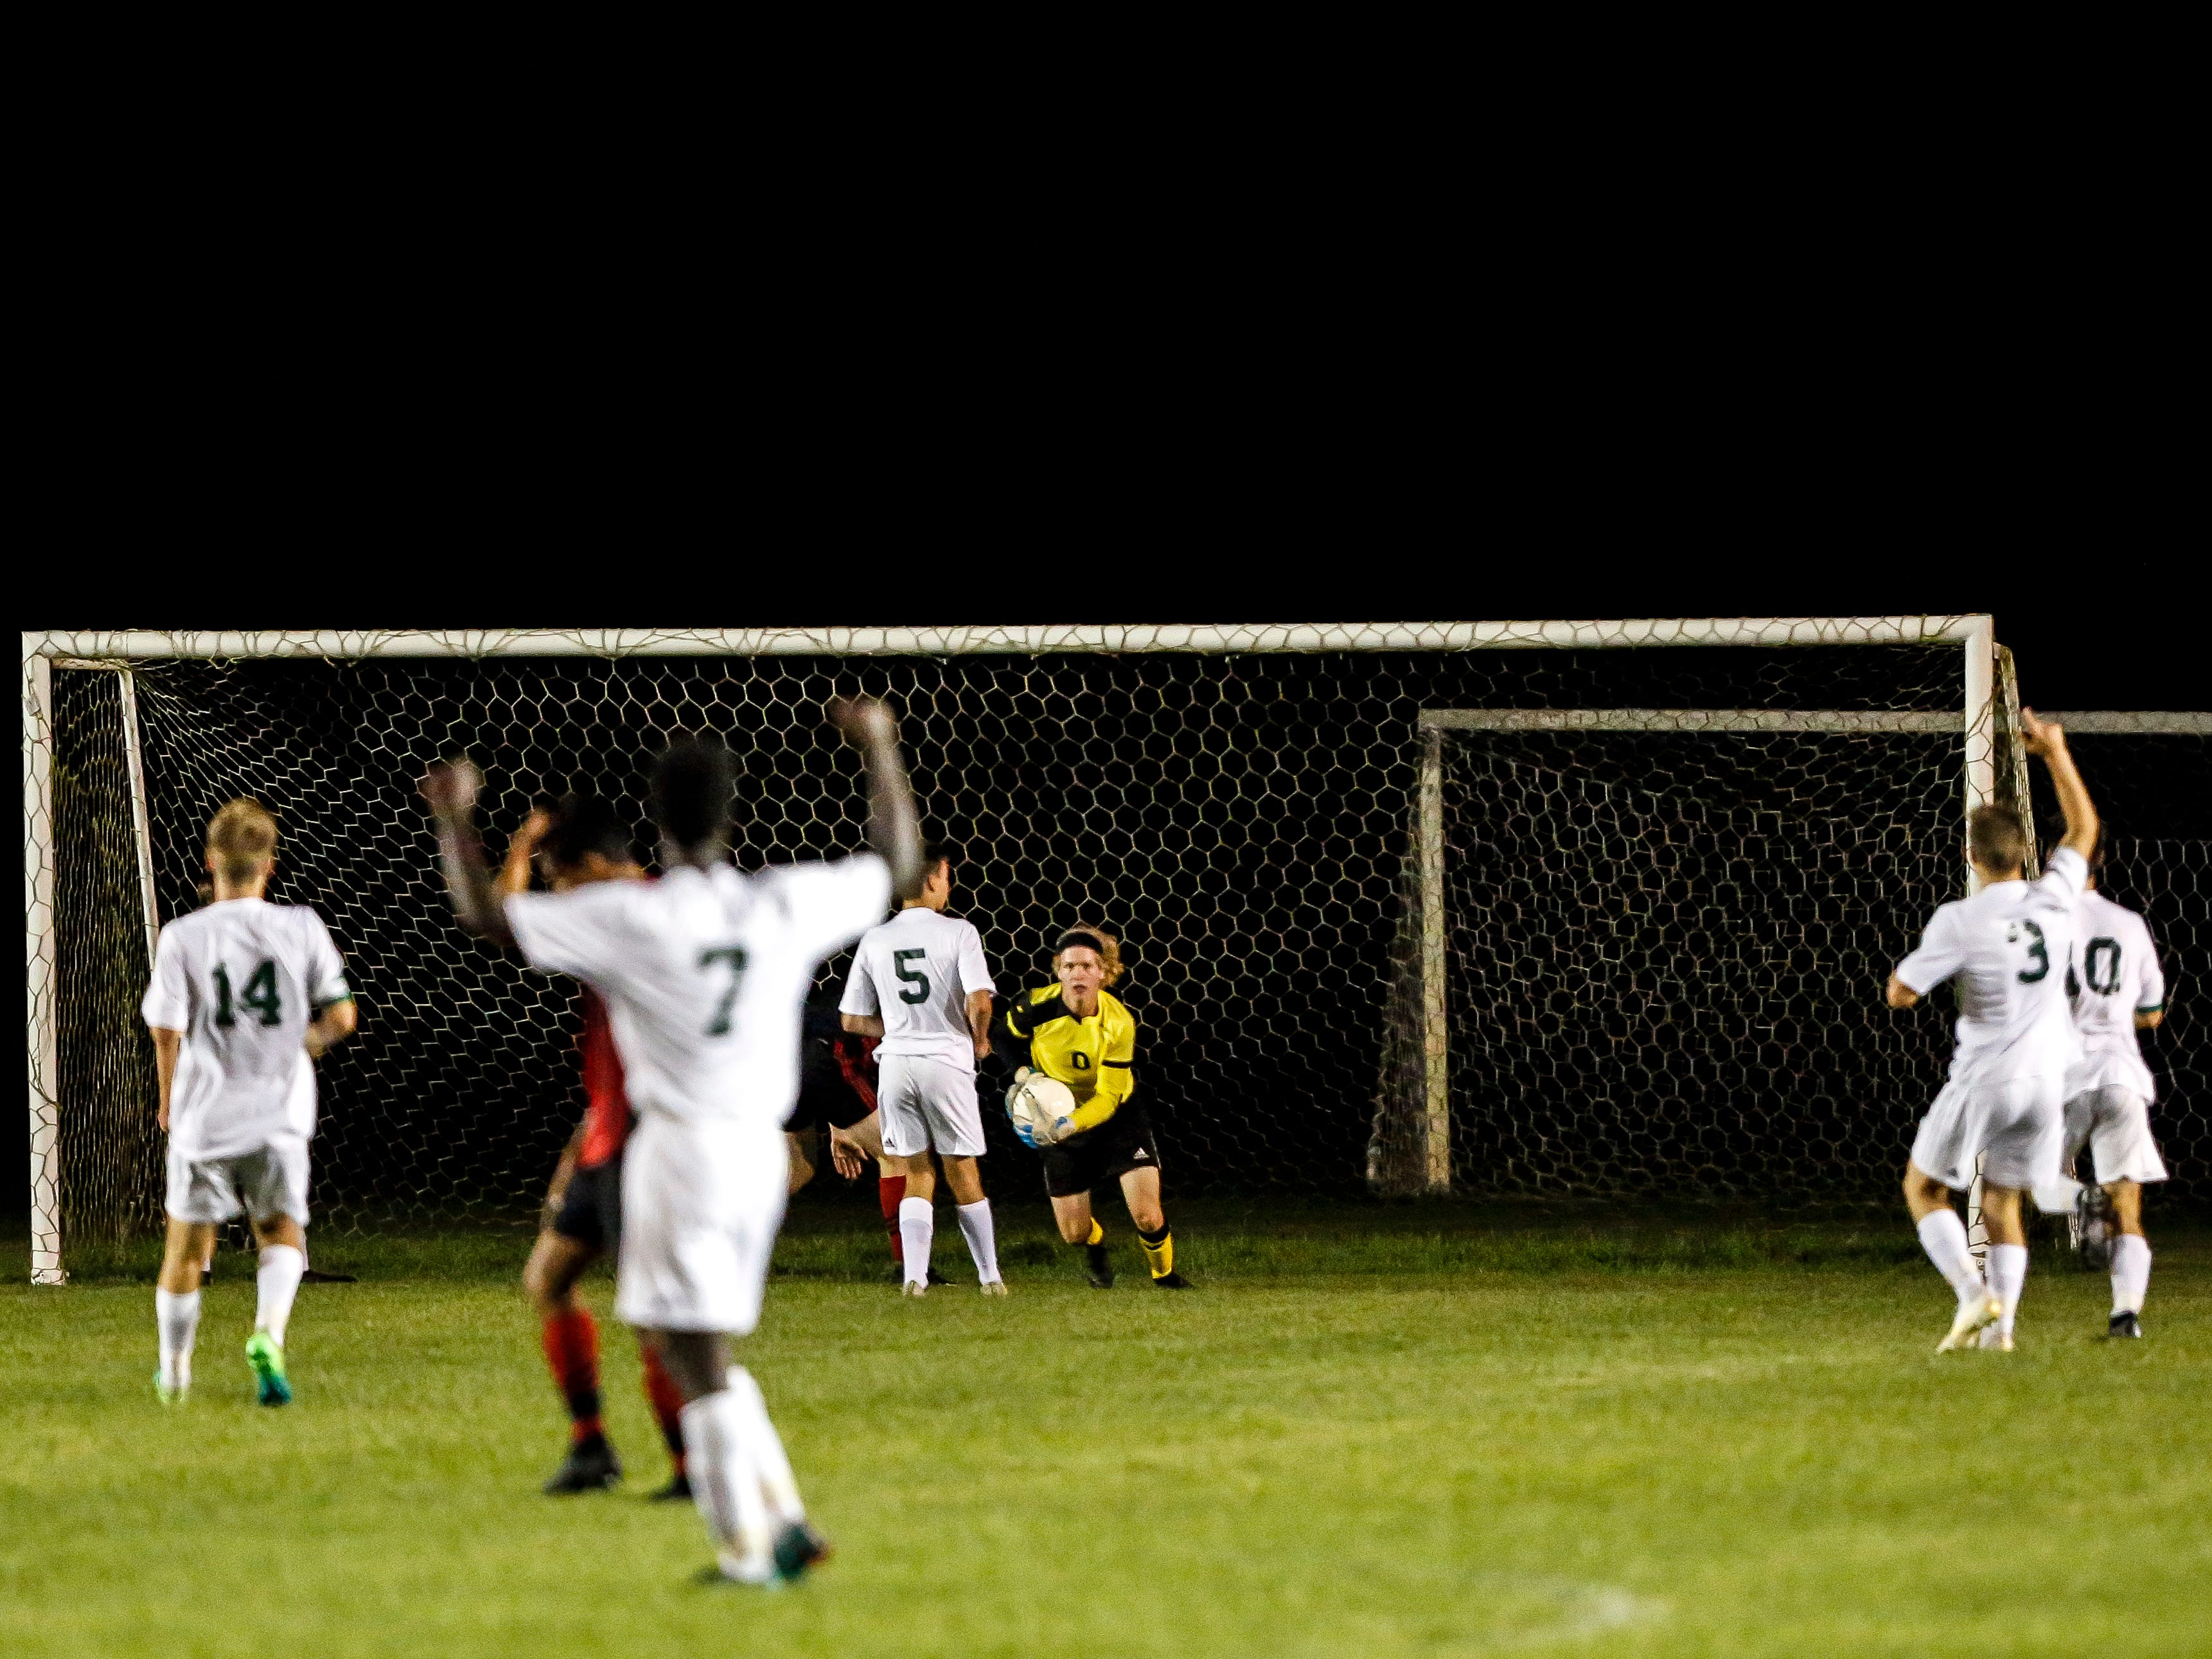 D.C. Everest goalkeeper Ty Tretter makes a save in the final few minutes of a soccer game between SPASH and D.C. Everest in Stevens Point, Wis., September 13, 2018.